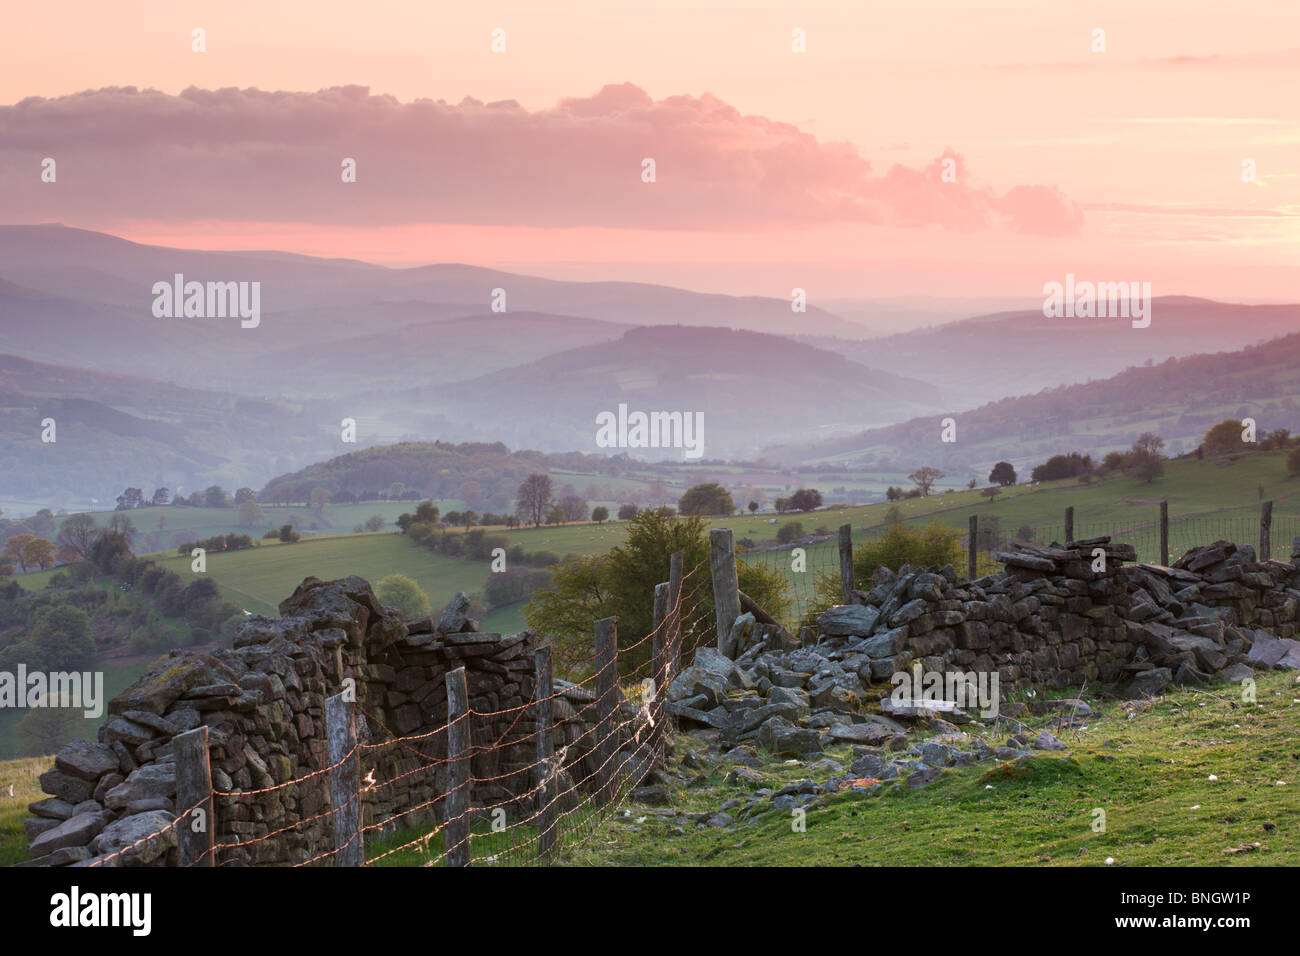 Dry stone wall on the slopes of Sugar Loaf mountain, looking towards the Usk Valley, Brecon Beacons National Park, - Stock Image